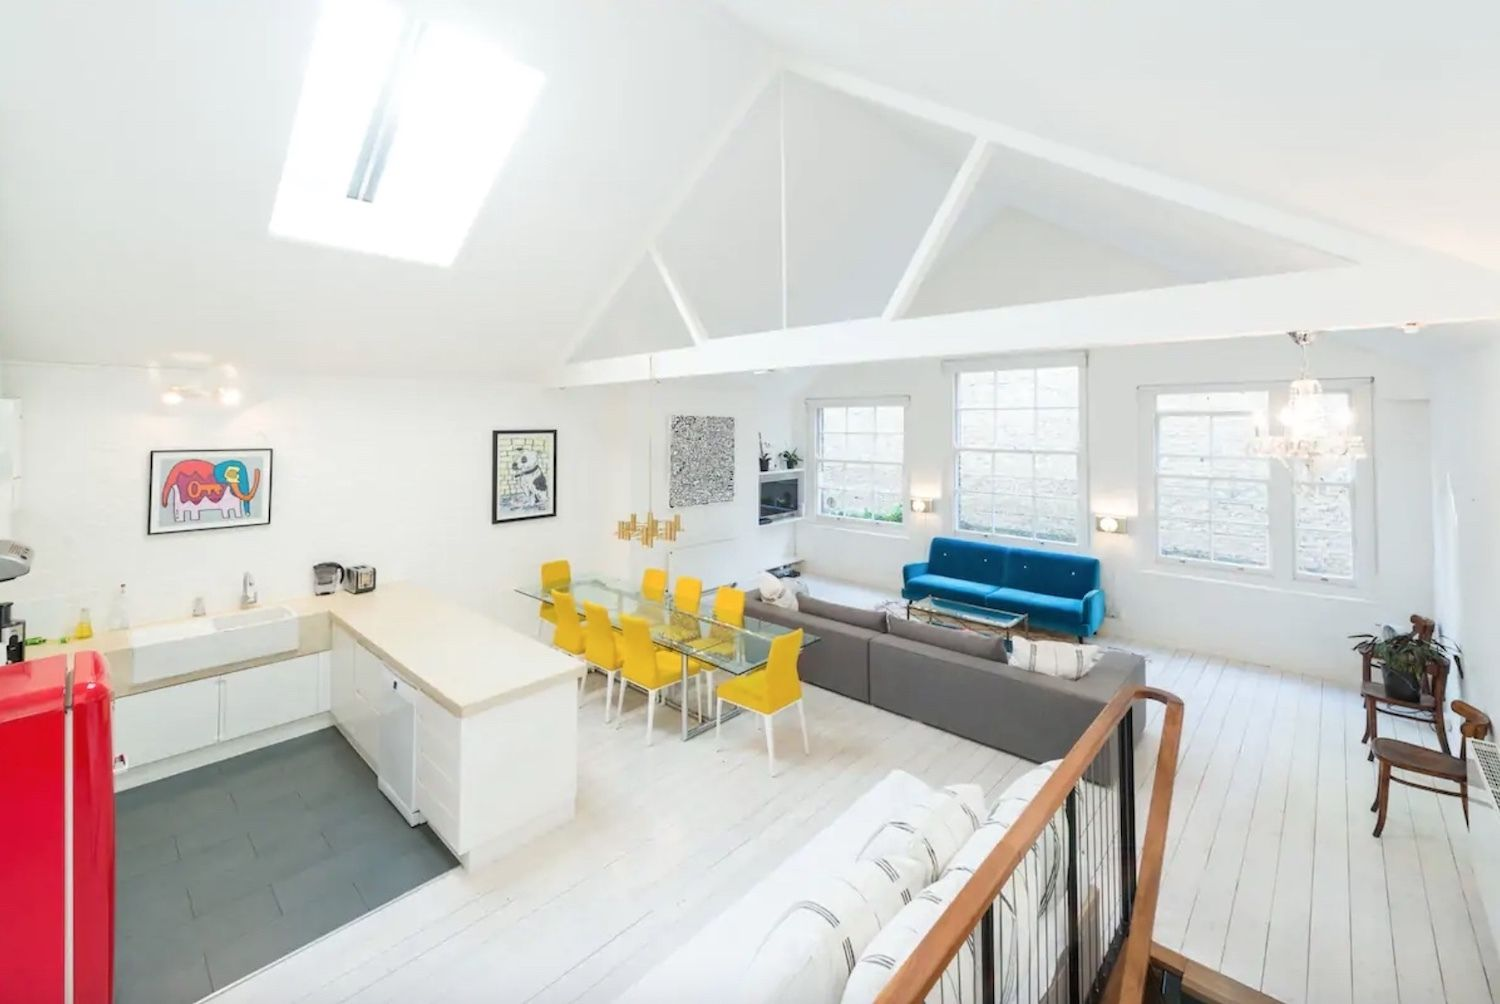 Bachelor-party-london-airbnb-penthouse, London Airbnbs